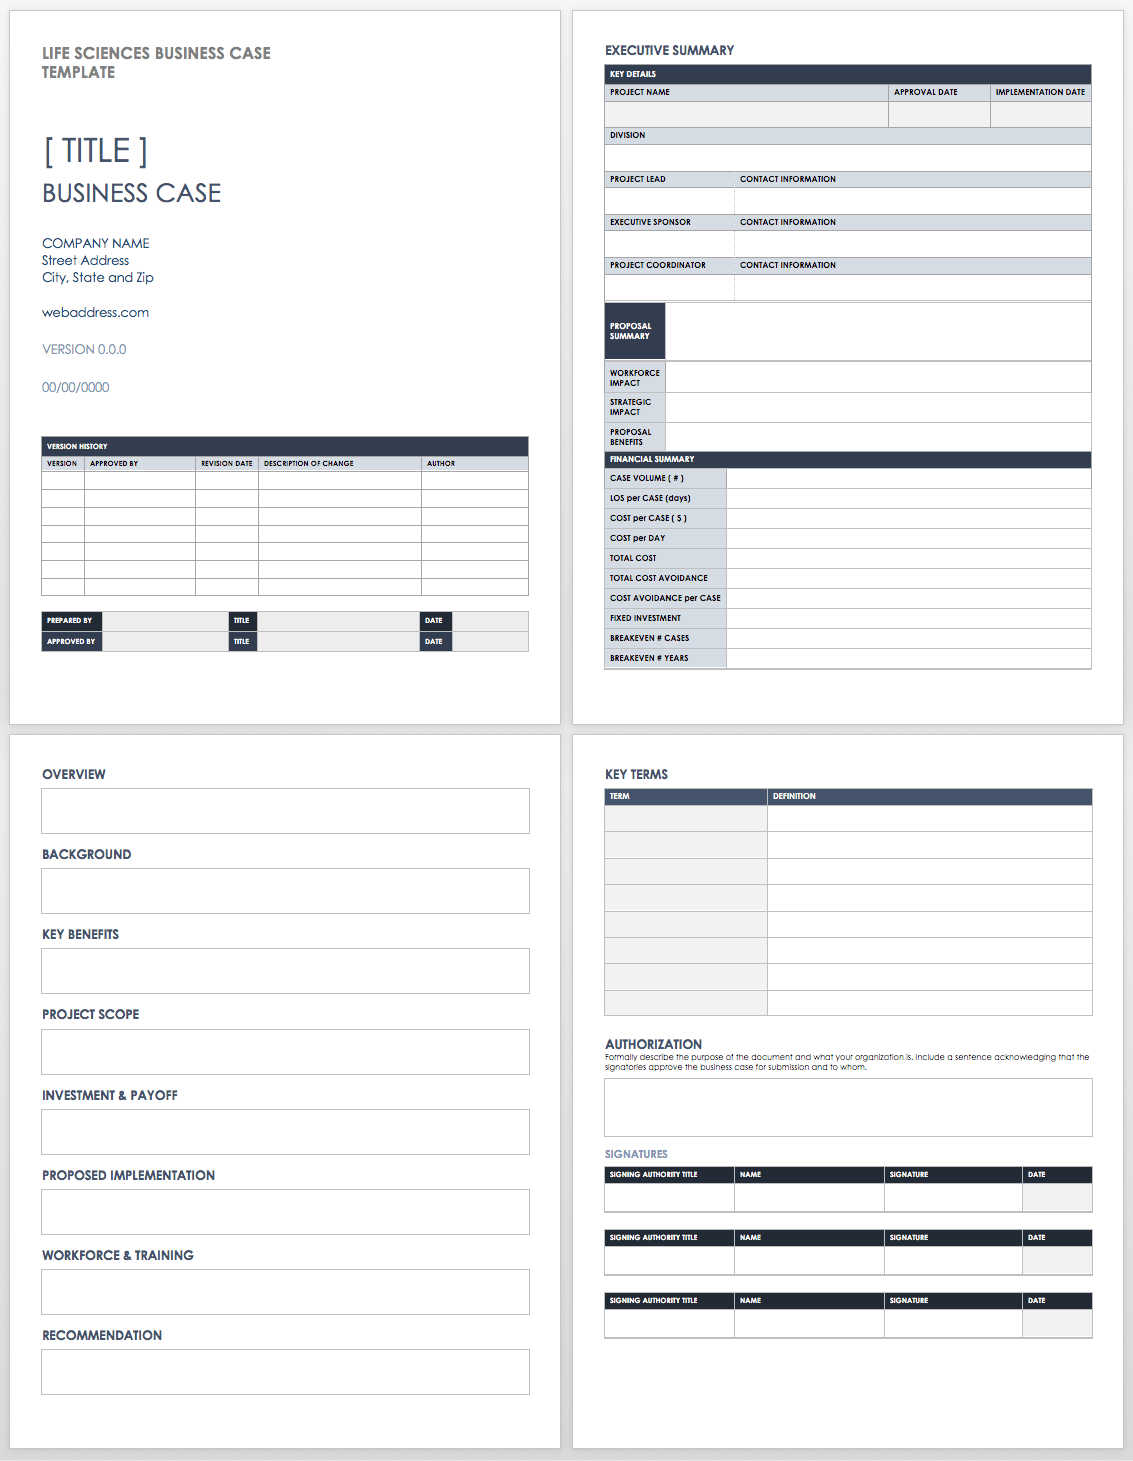 Free Project Business Case Template Excel With Project Business Case Template Excel Free Download